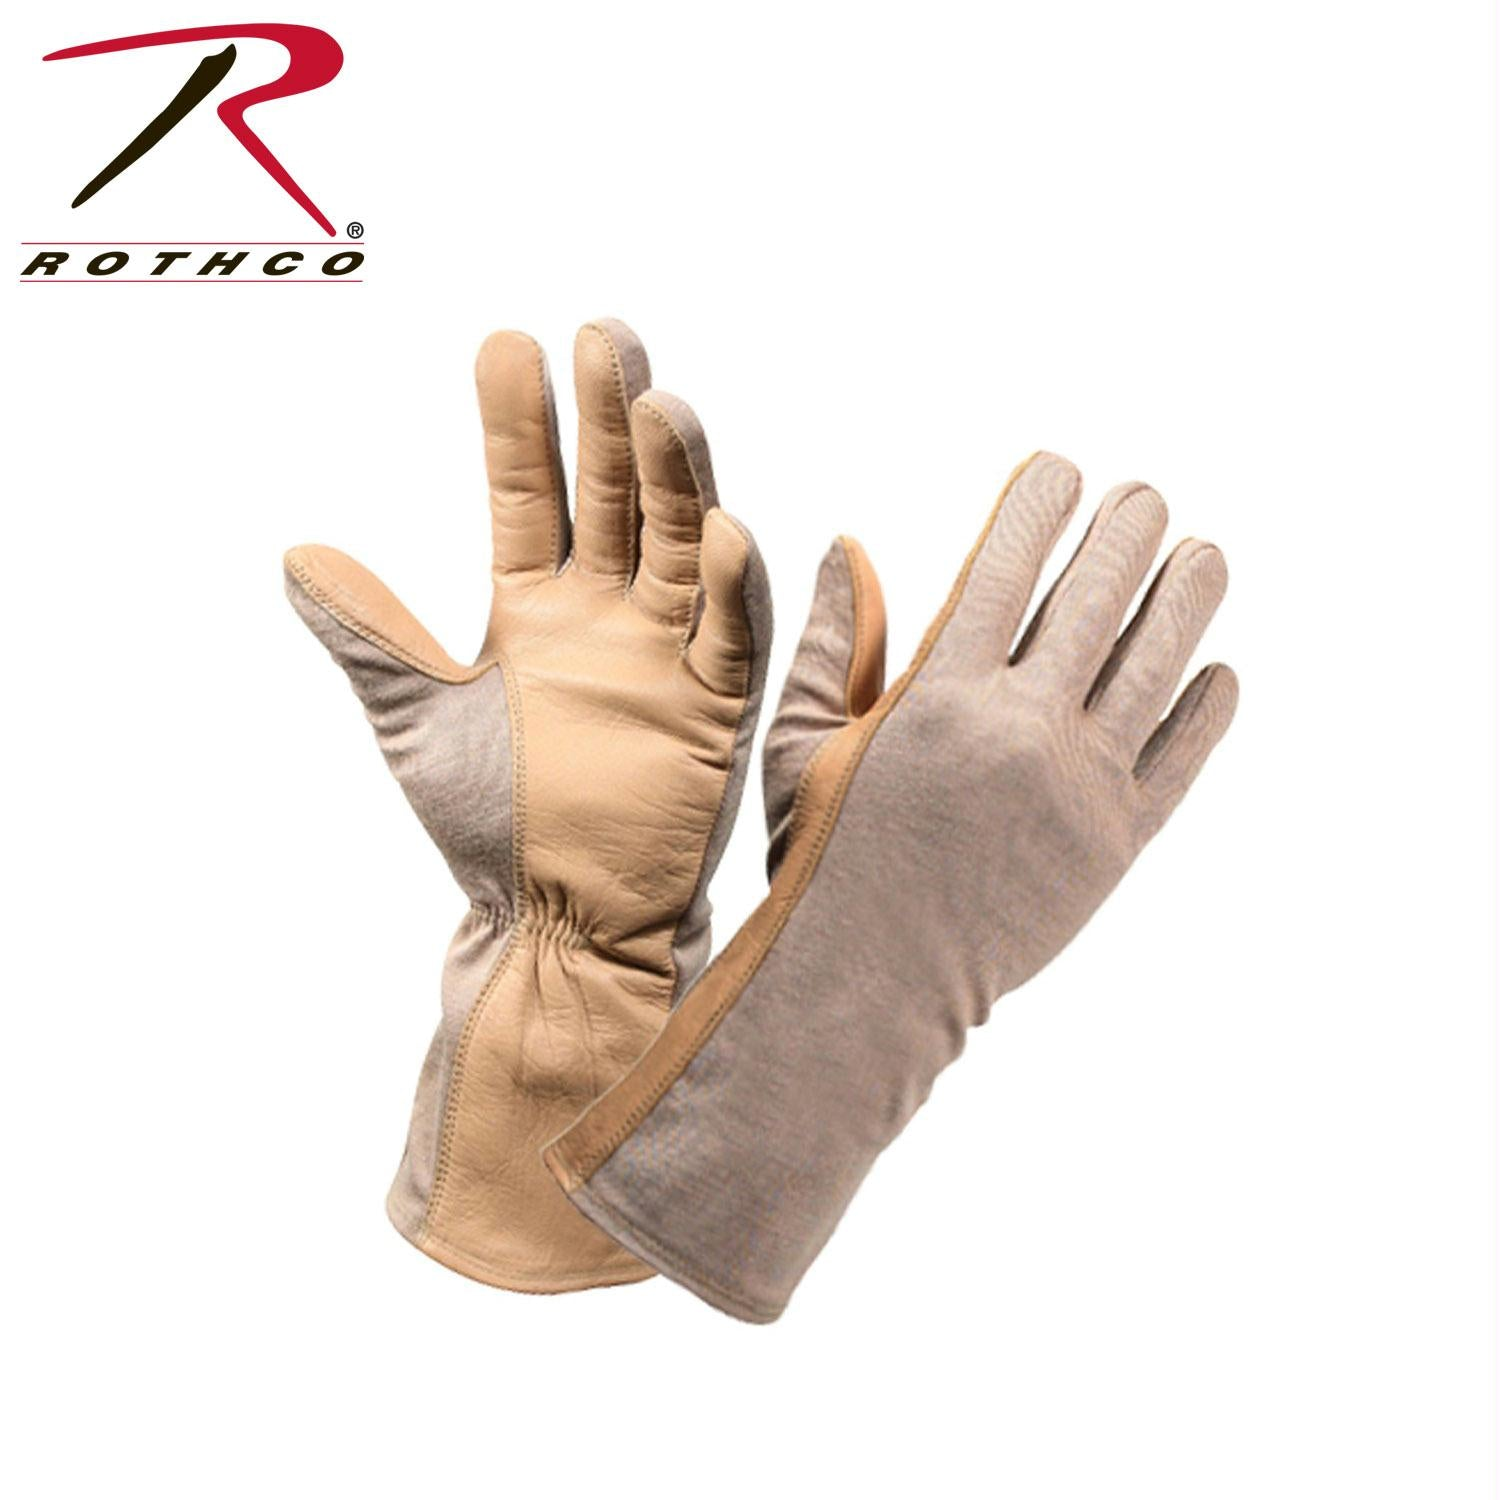 Rothco G.I. Type Flame & Heat Resistant Flight Gloves - Desert Sand / 11